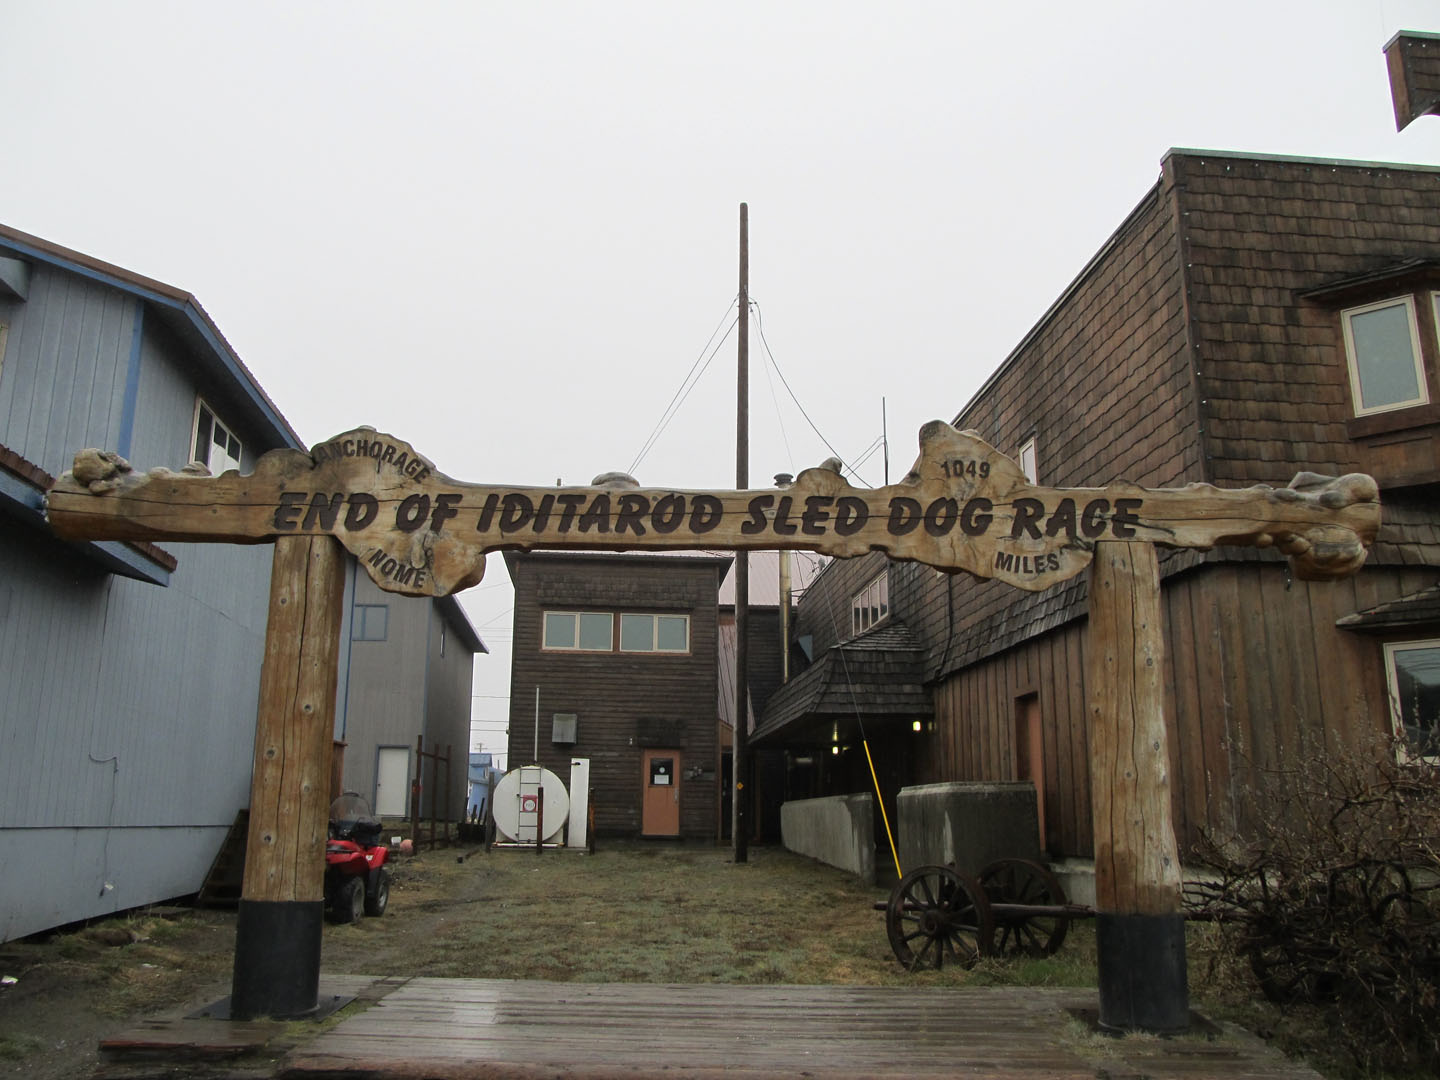 End of Iditarod